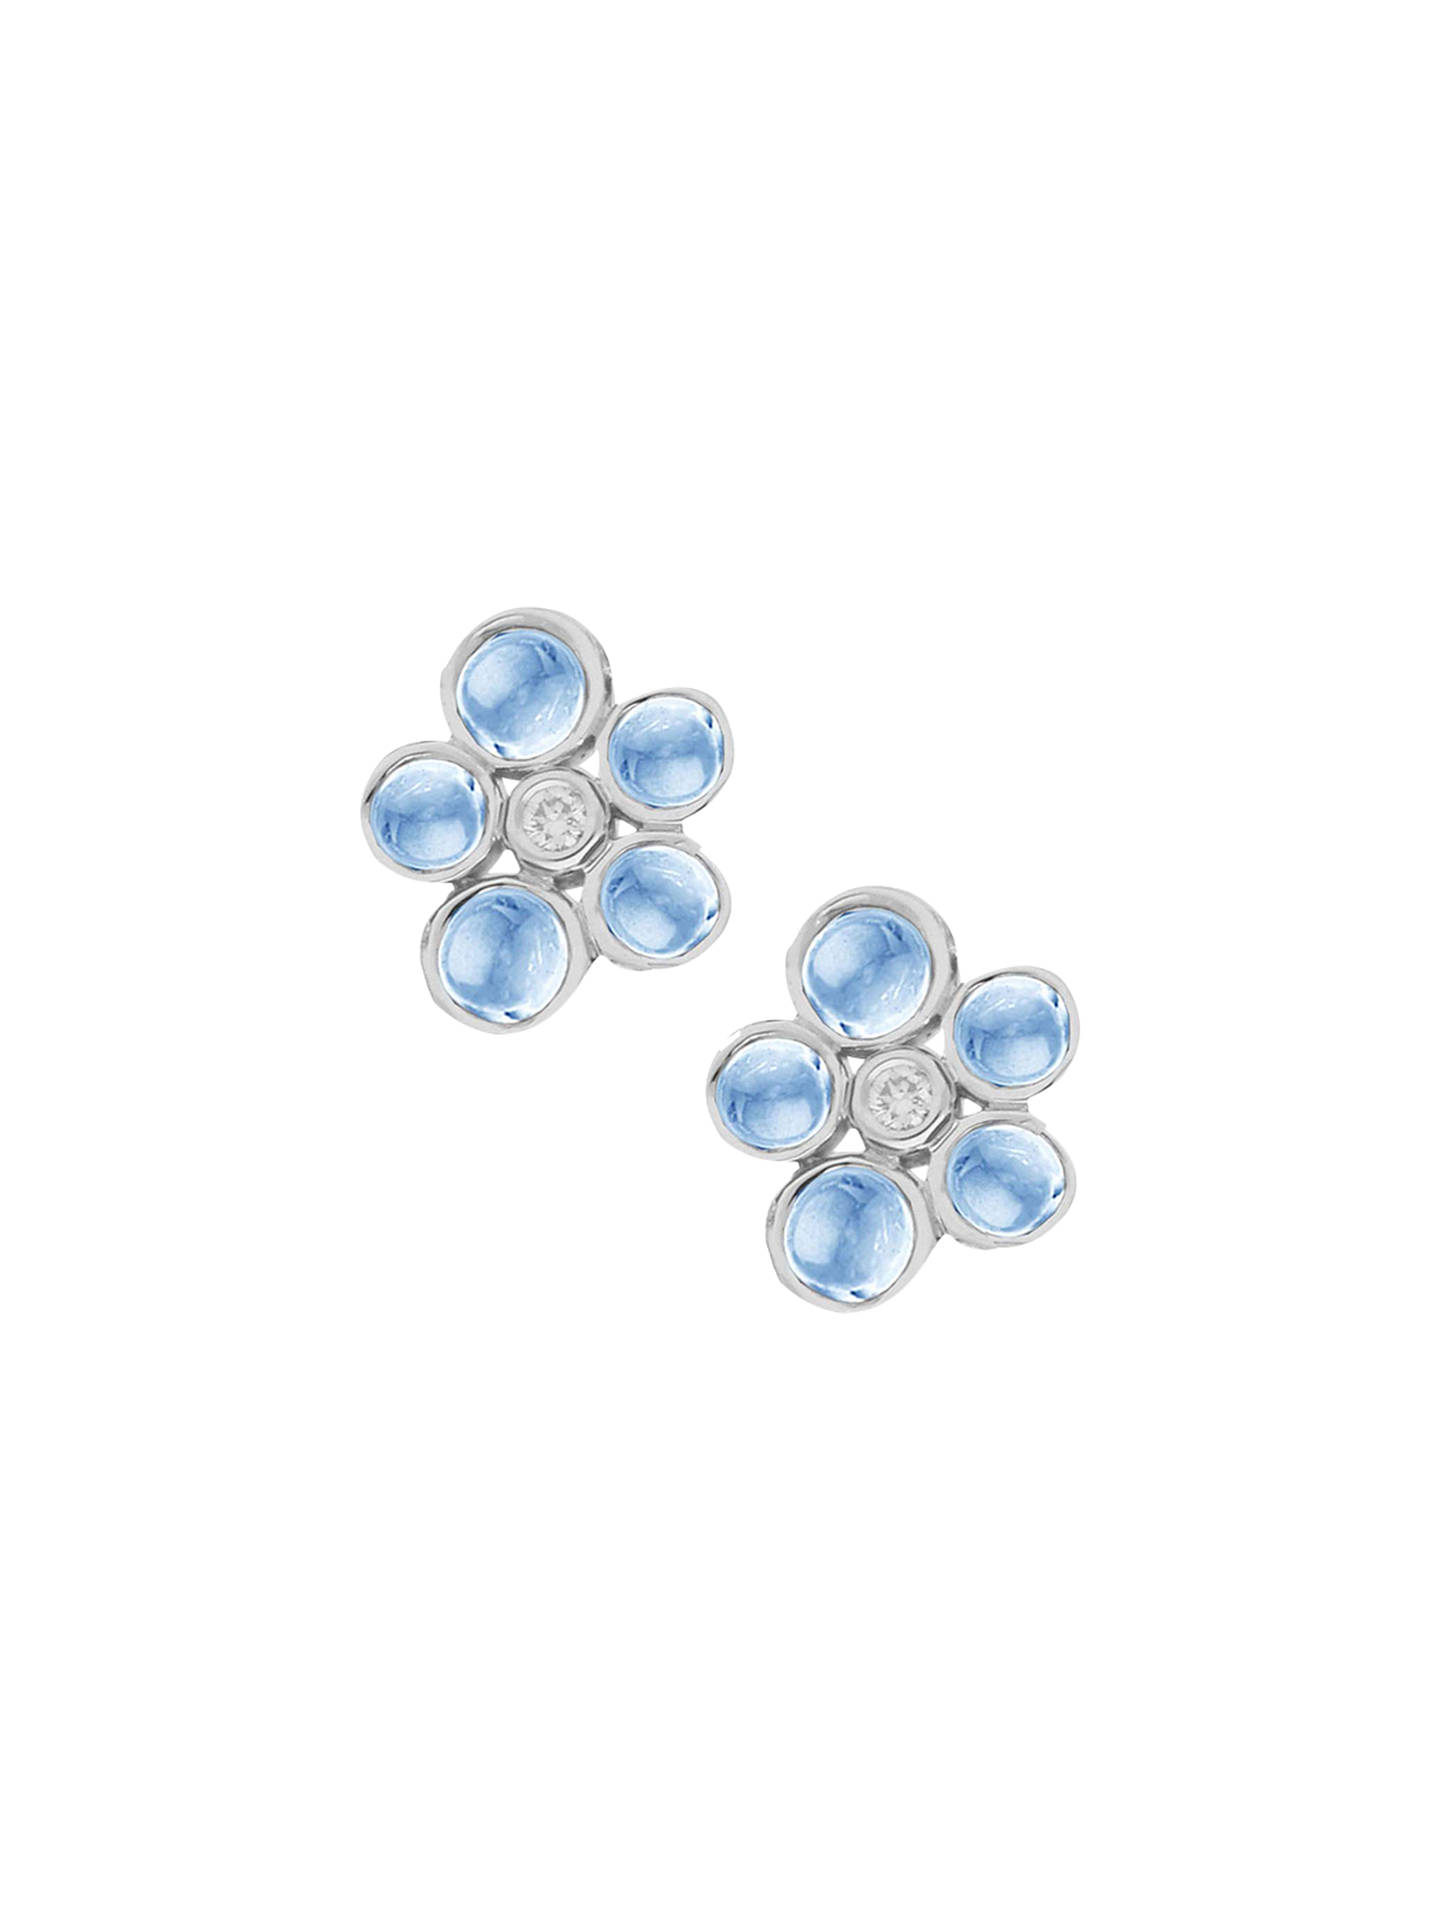 BuyLondon Road 9ct Gold Cabochon Diamond Stud Earrings, Blue Topaz Online at johnlewis.com